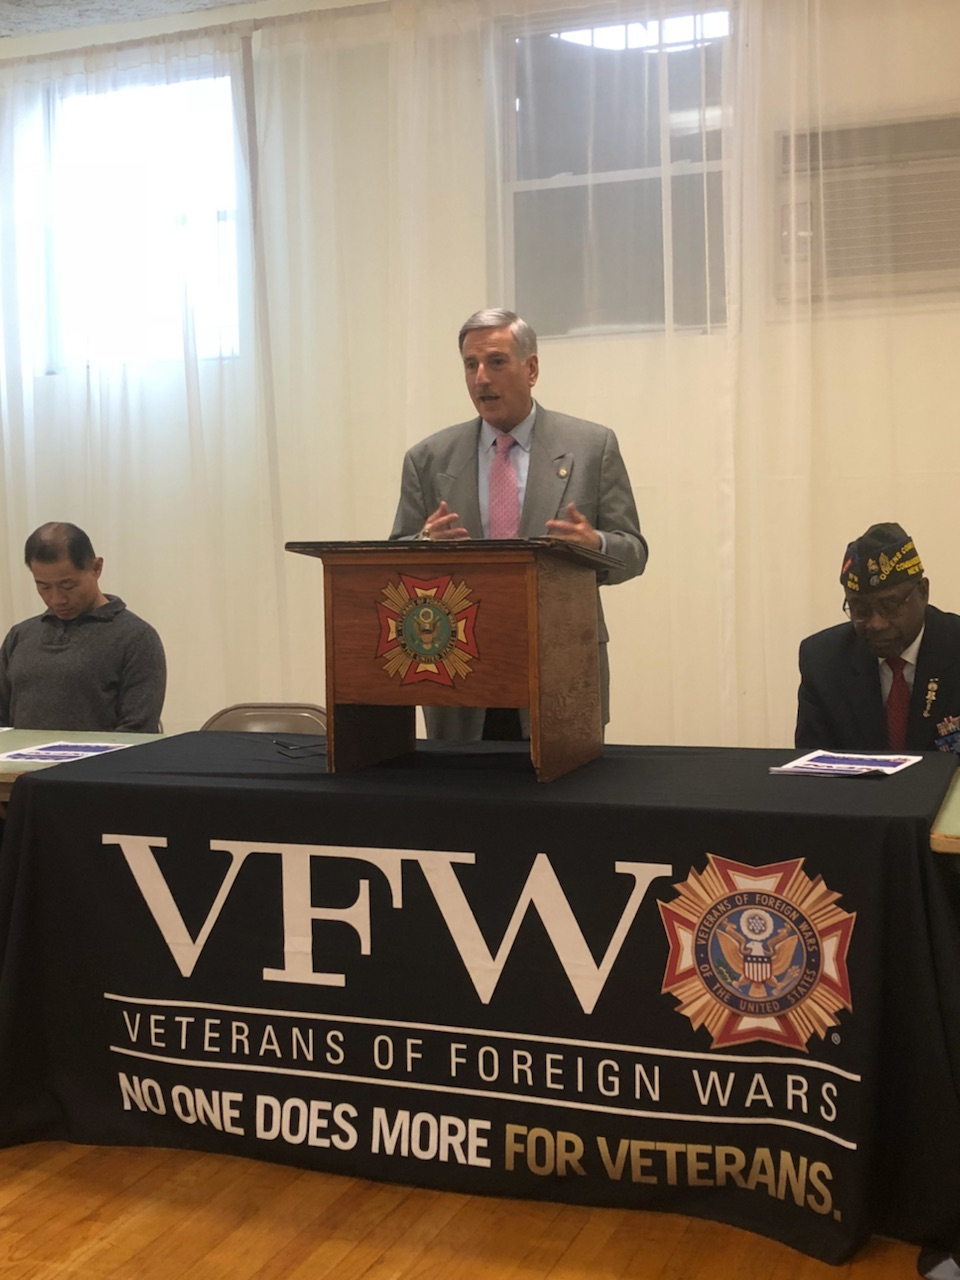 Assemblyman Weprin attended the Queens County Council VFW 54th Annual Legislative Breakfast at the Queensboro Hill VFW Post No. 3427 and spoke with Veterans to discuss their needs in the new legislati